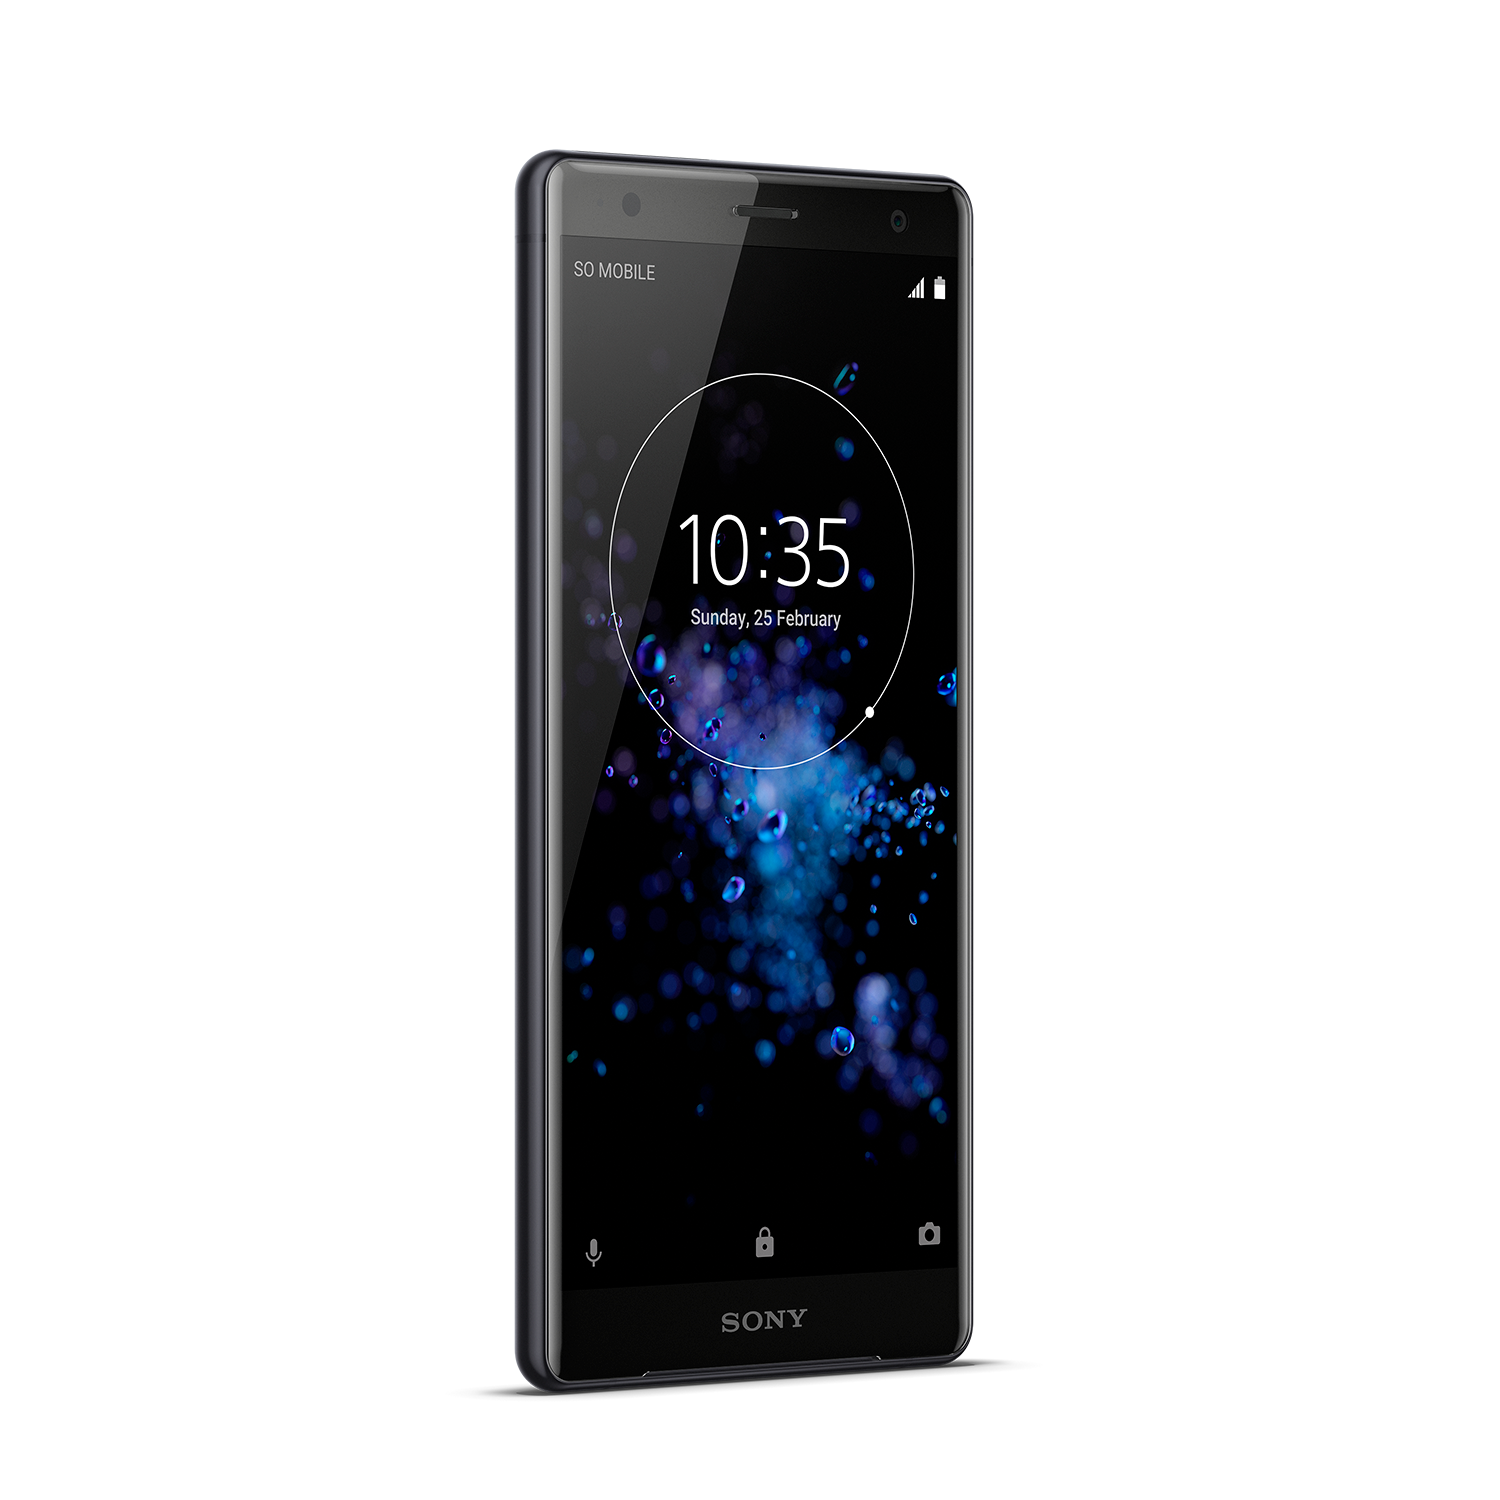 Sony Xperia XZ2 – Test, Review & Evaluation.